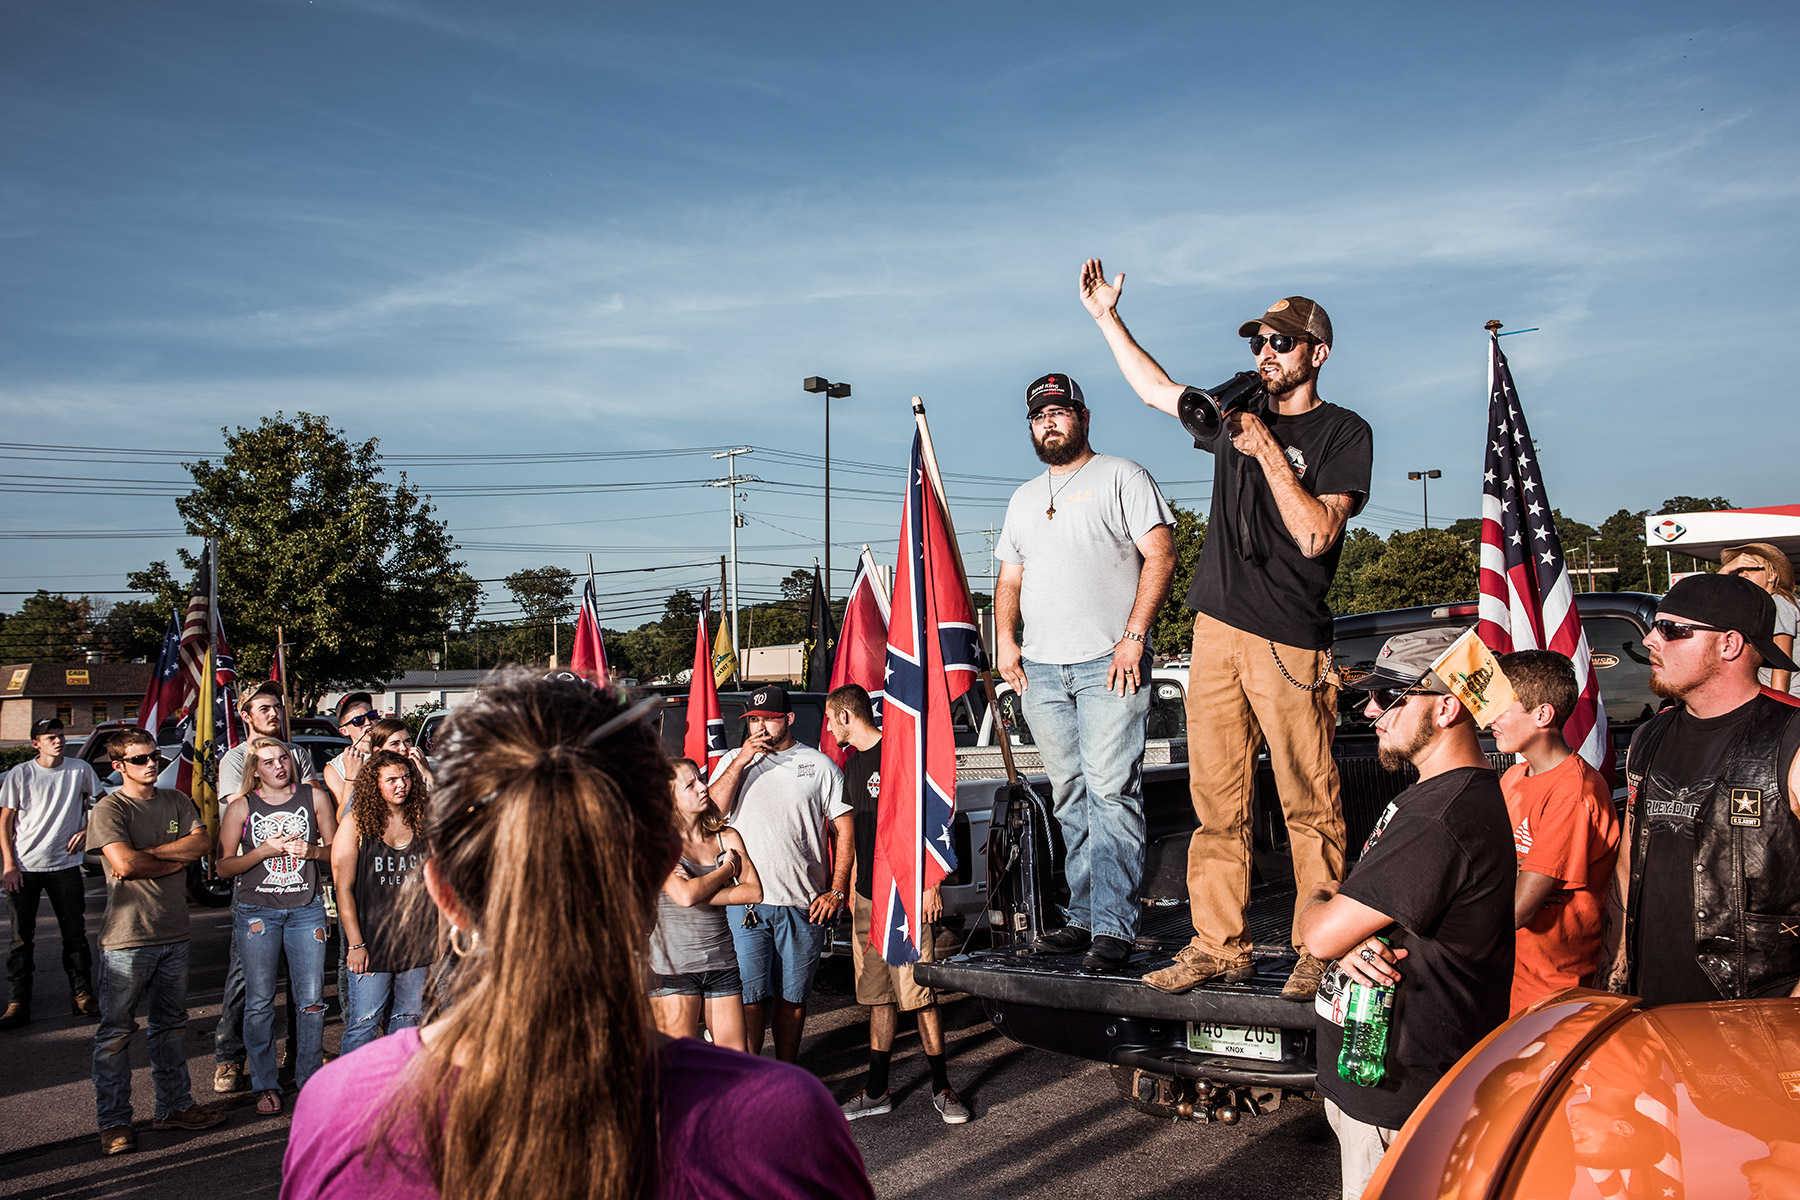 Tom Piece, right and Mathew Heimbach, tailgate left, deliver speeches during a confederate flag rally held in a parking lot in Seymour, Tennessee on Thursday, July 17, 2015. After rallying the crowd with talk of their heritage being under attach from the federal government, the two prompted the group to drive with flags raised through Knoxville. Mike Belleme for Al Jazeera America